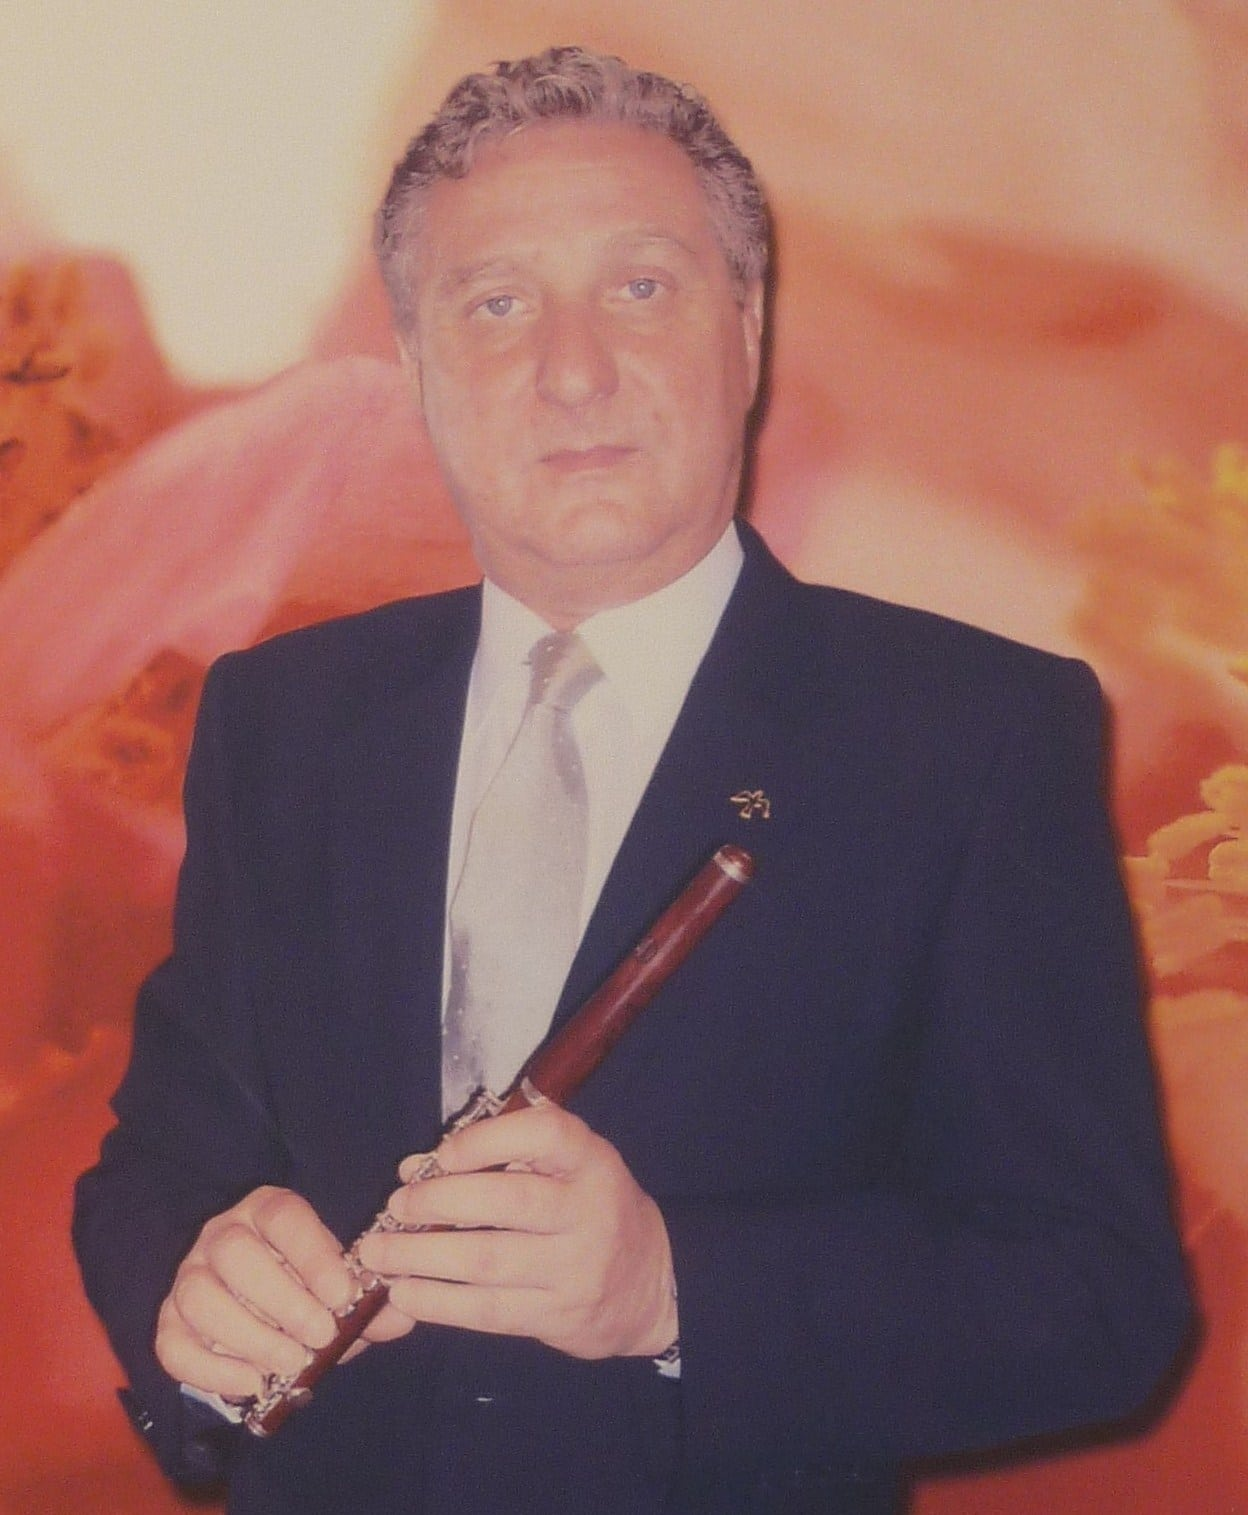 Spain mourns a flute virtuoso